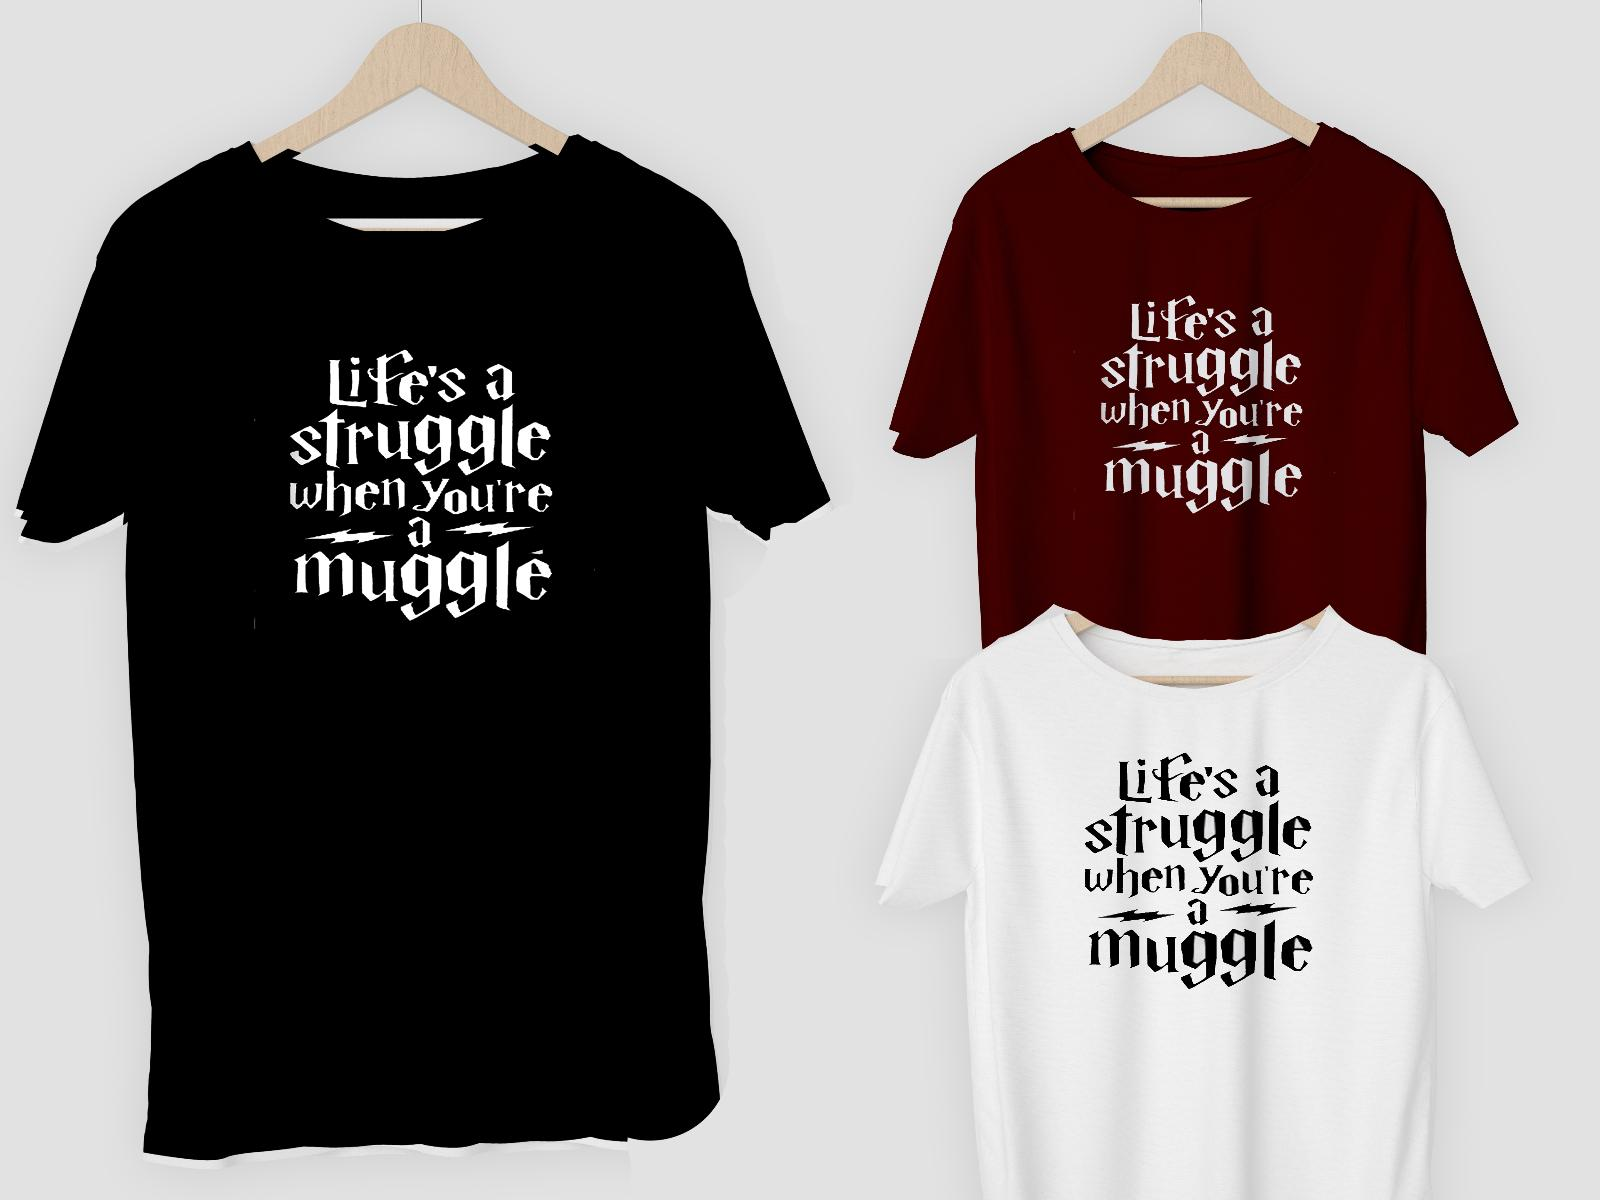 888bf5bc Life A Struggle Muggle T Shirt Or DIY Vinyl Gifts For Christmas Harry  Potter Funny Unisex Tshirt Top Cool Tees Graphic T Shirt From Tshirtbakers,  ...